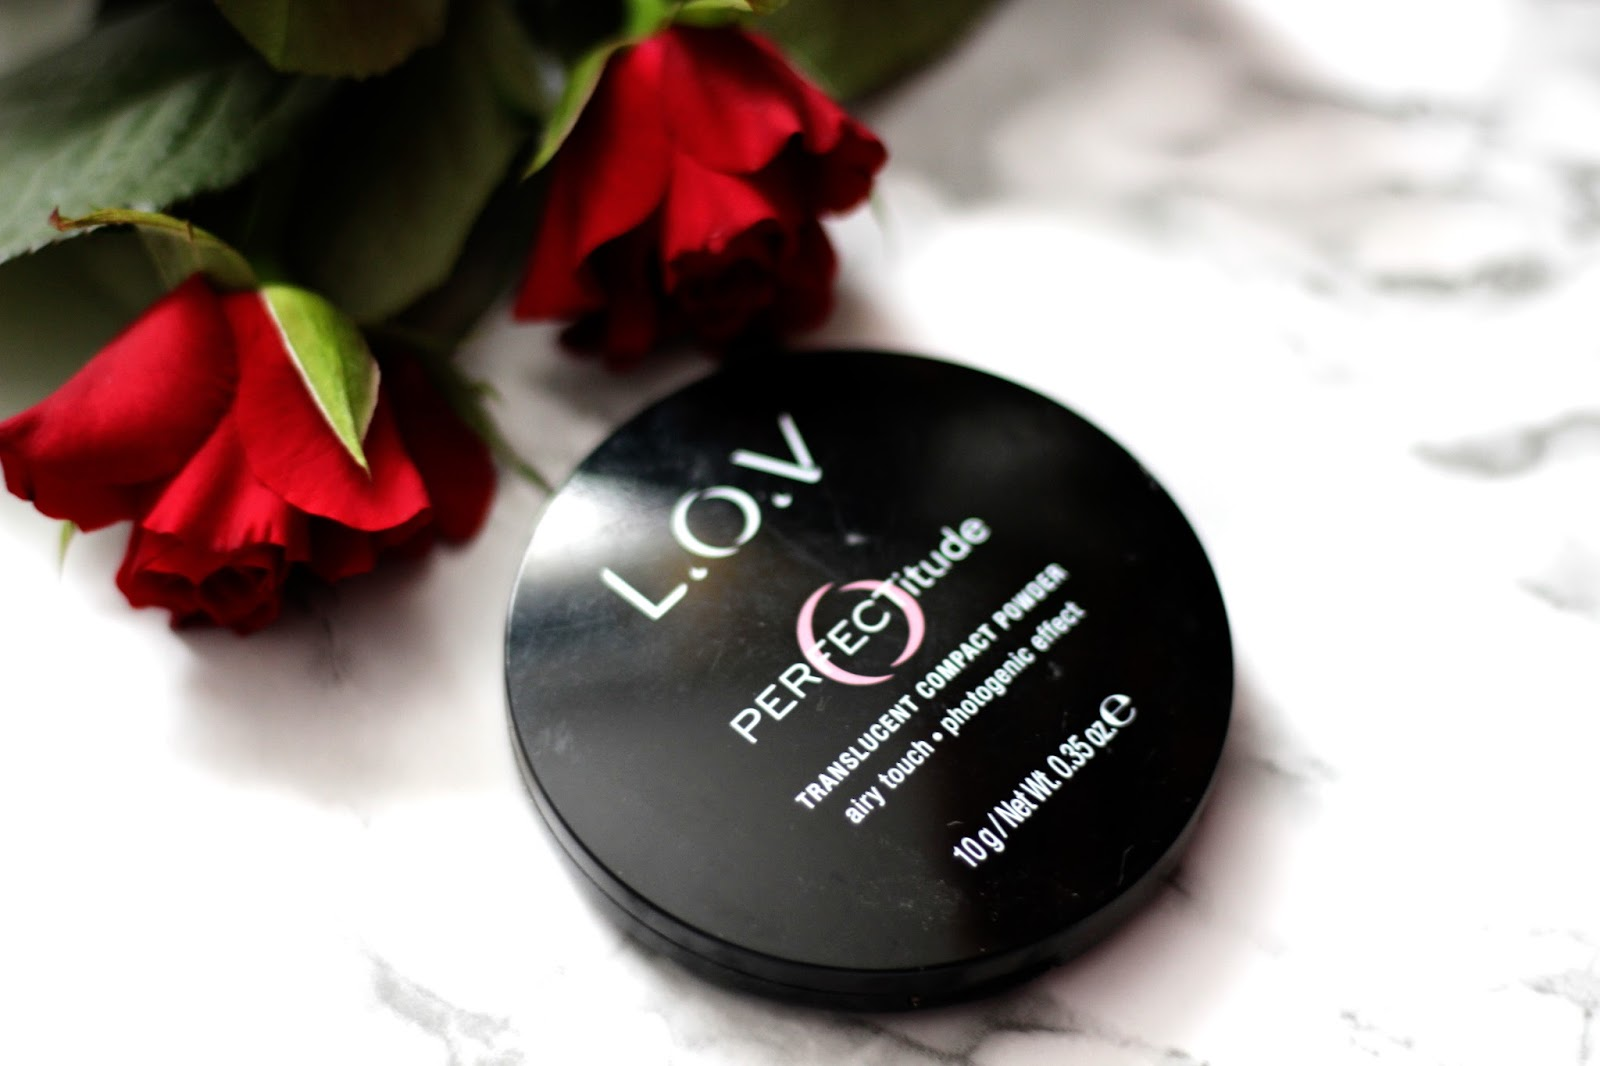 L.O.V Perfectitude Translucent Compact Powder Review Erfahrungen